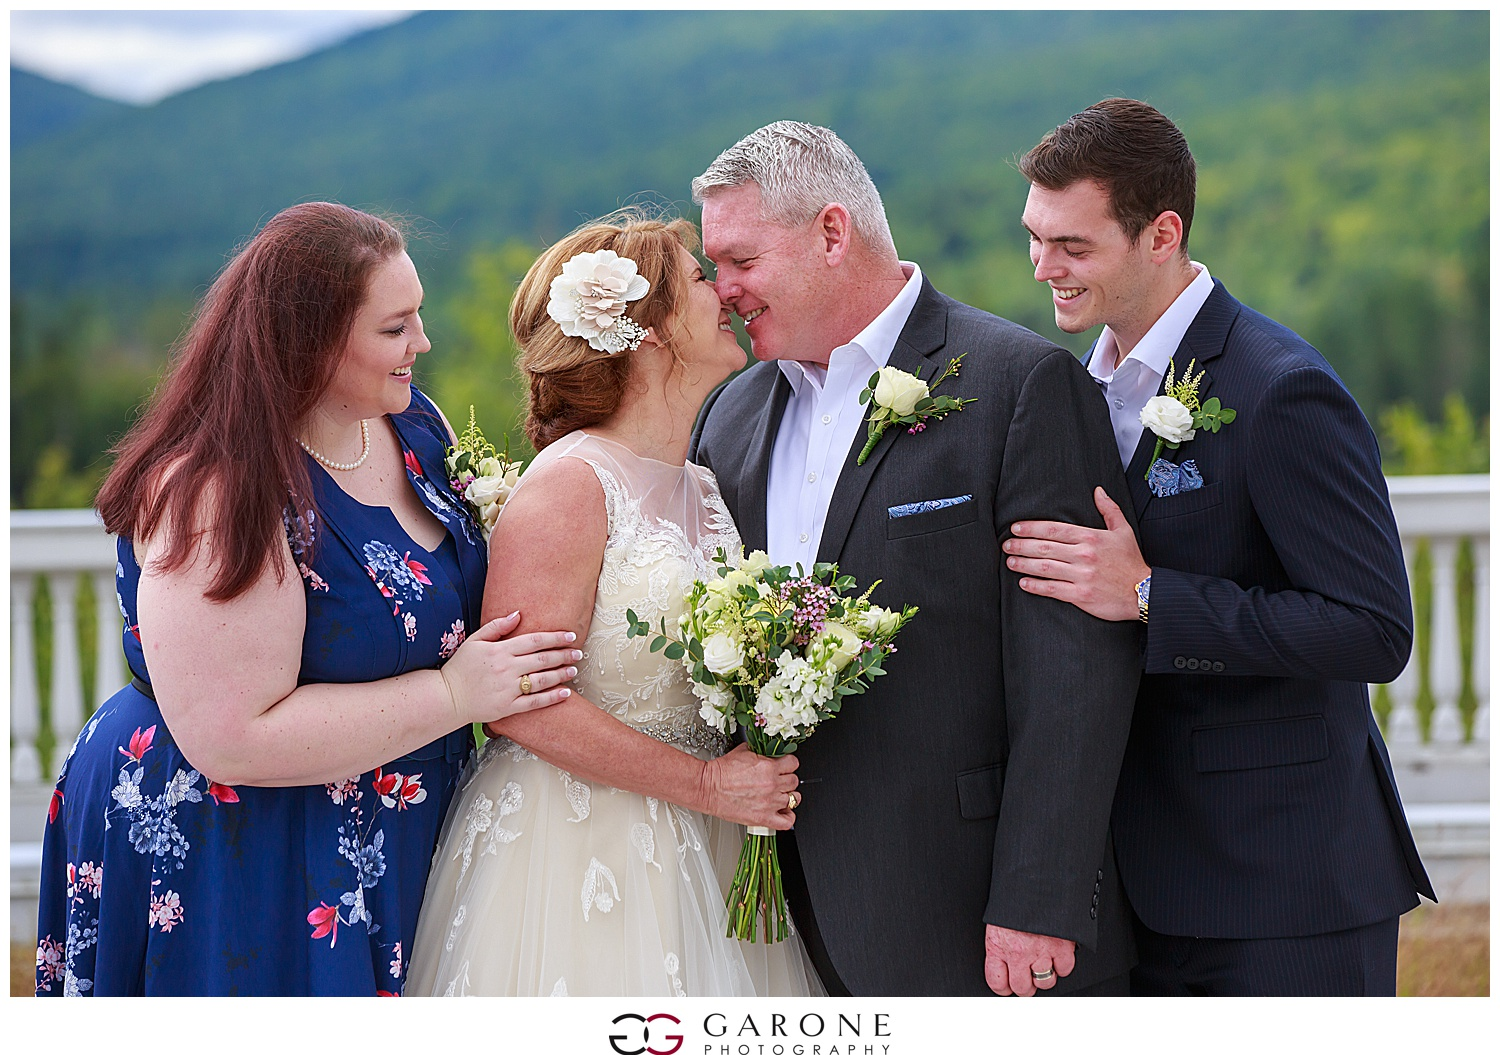 Brian_Kelly_Omni_Mount_Washington_Wedding_Garone_Photography_Wedding_NH_Photography_0013.jpg